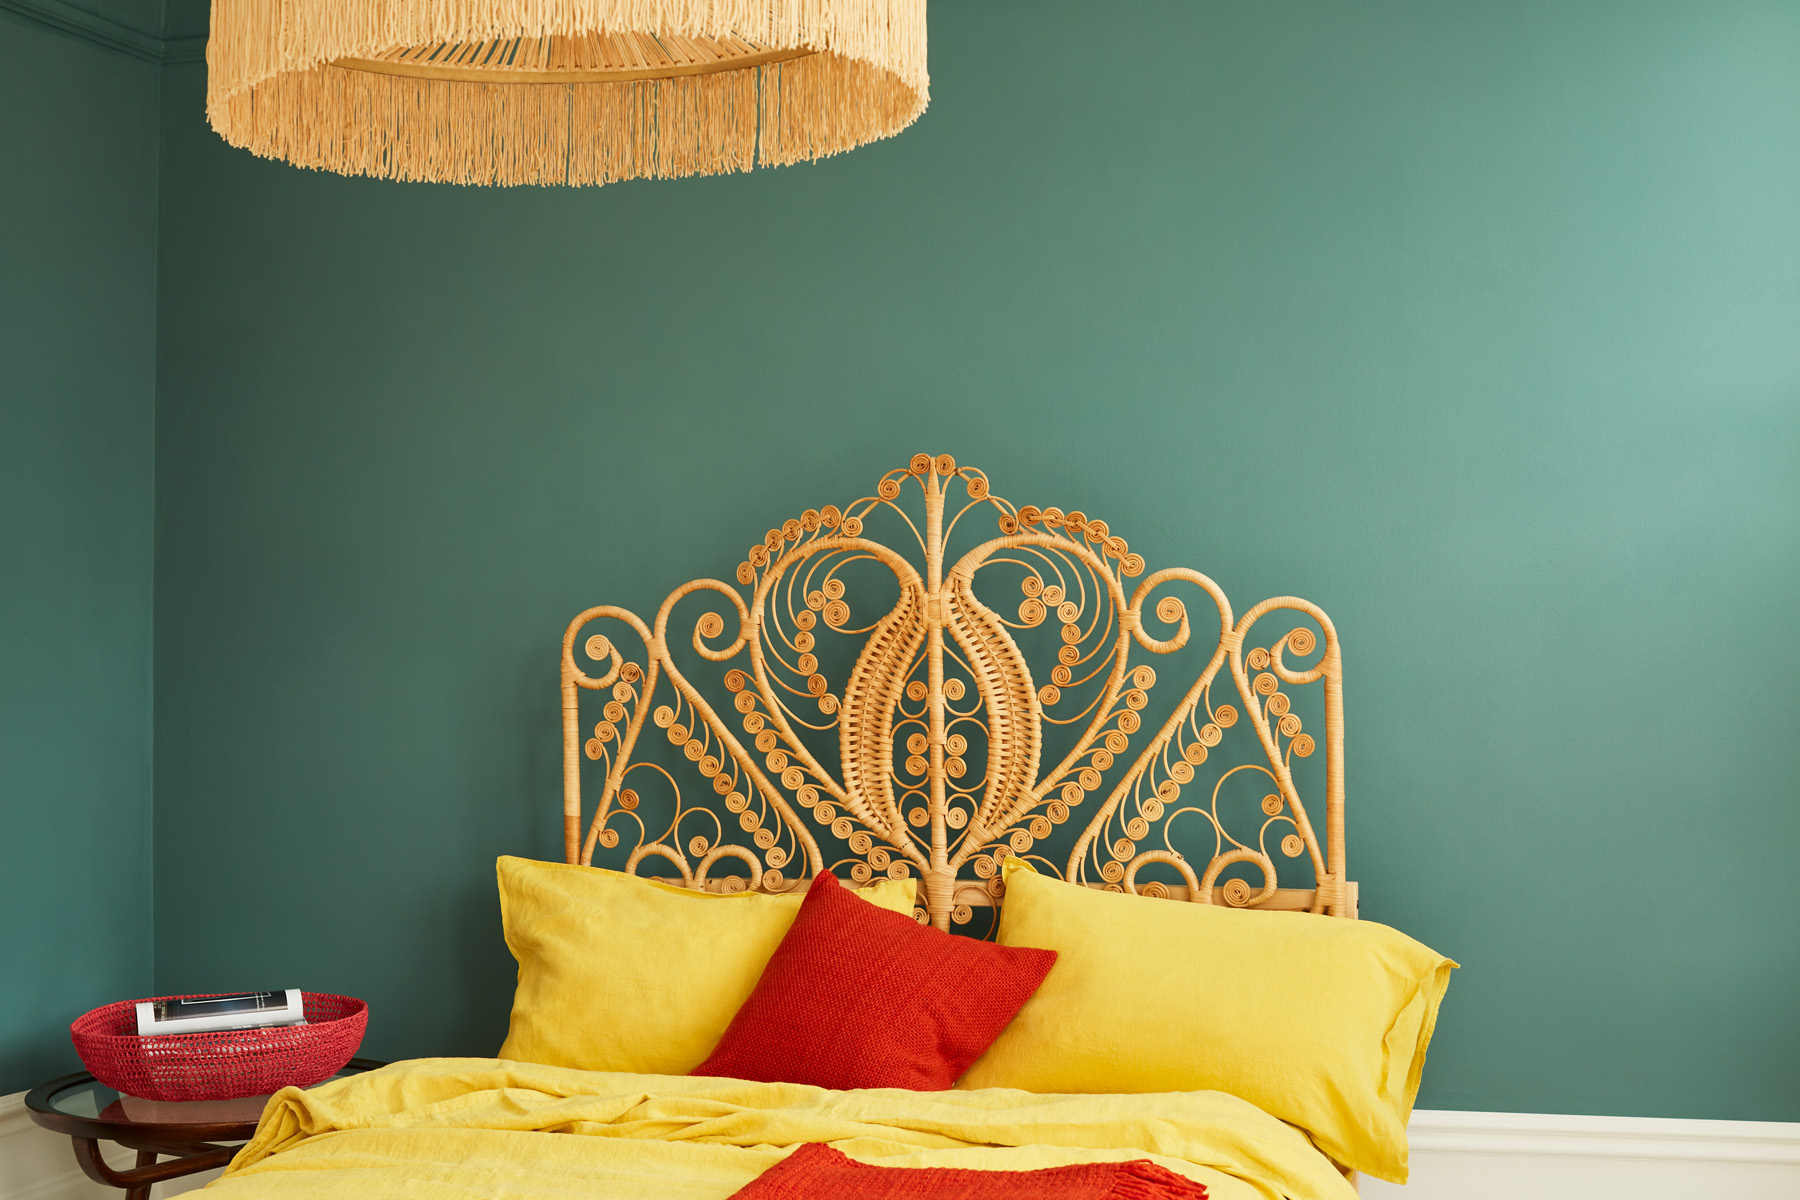 Hobgoblin is a relaxed, deep green that works well with mustard colours